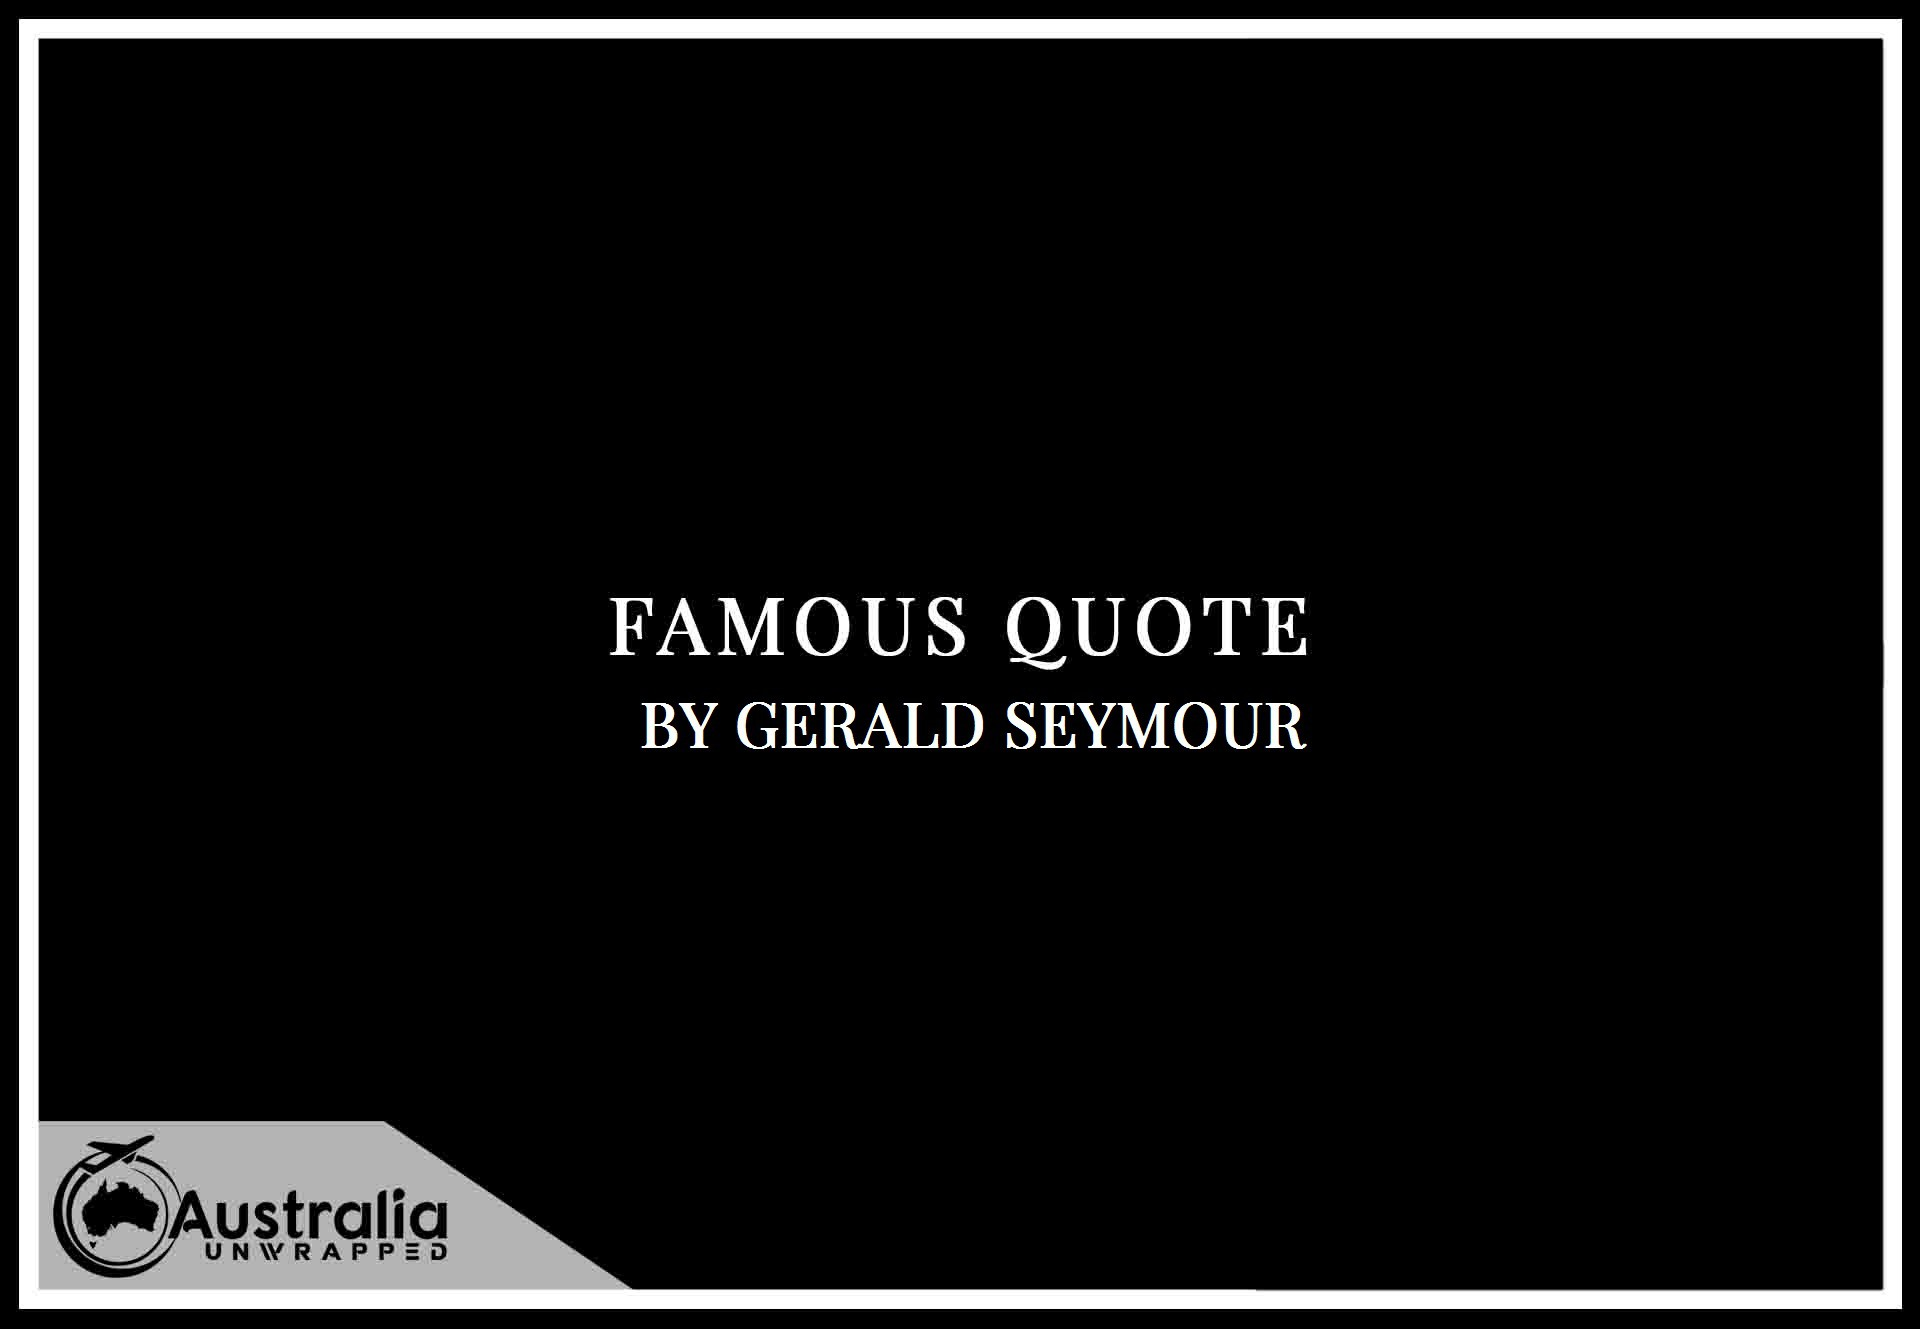 Gerald Seymour's Top 1 Popular and Famous Quotes